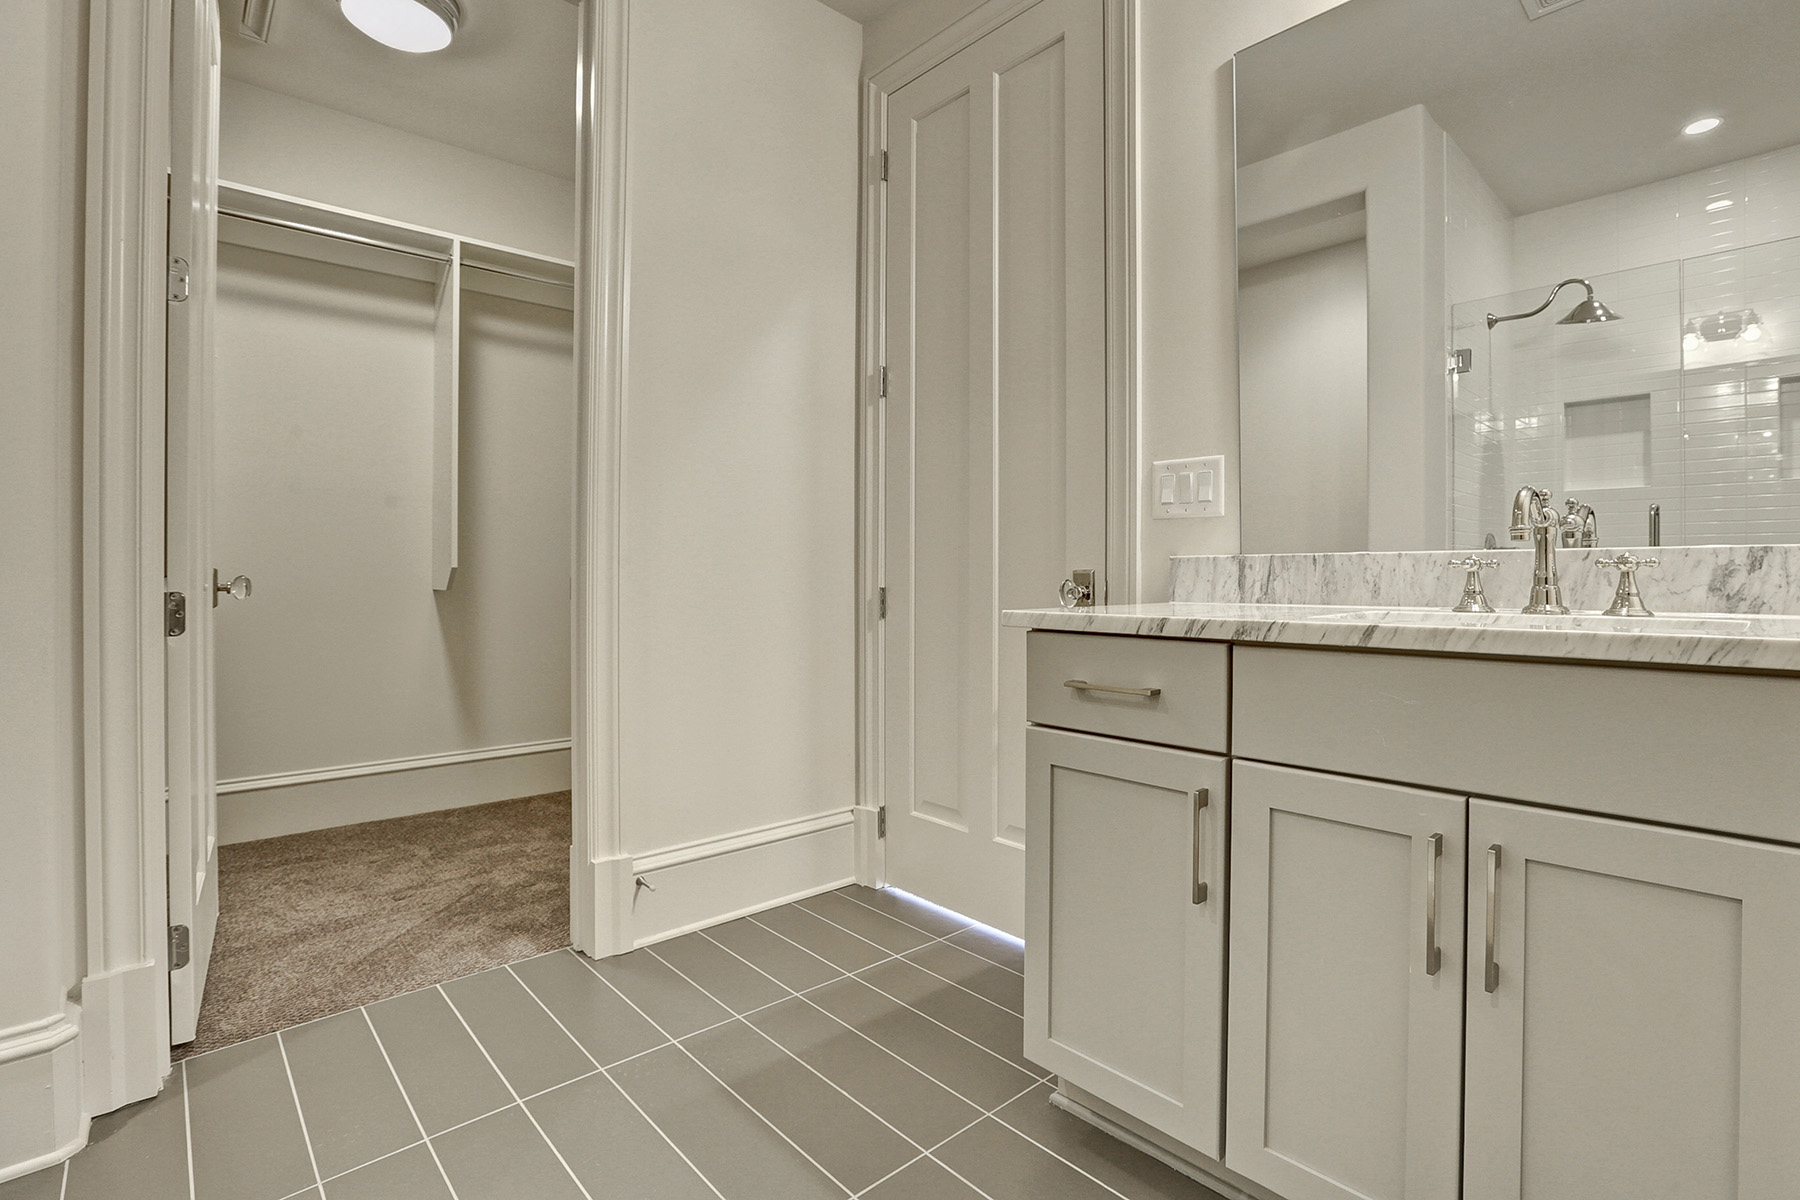 Additional photo for property listing at Exquisite Newer Construction With Elevator And Private Courtyard In Ansley Park 1400 Piedmont Avenue NE No. 5, Atlanta, Georgia 30309 Estados Unidos